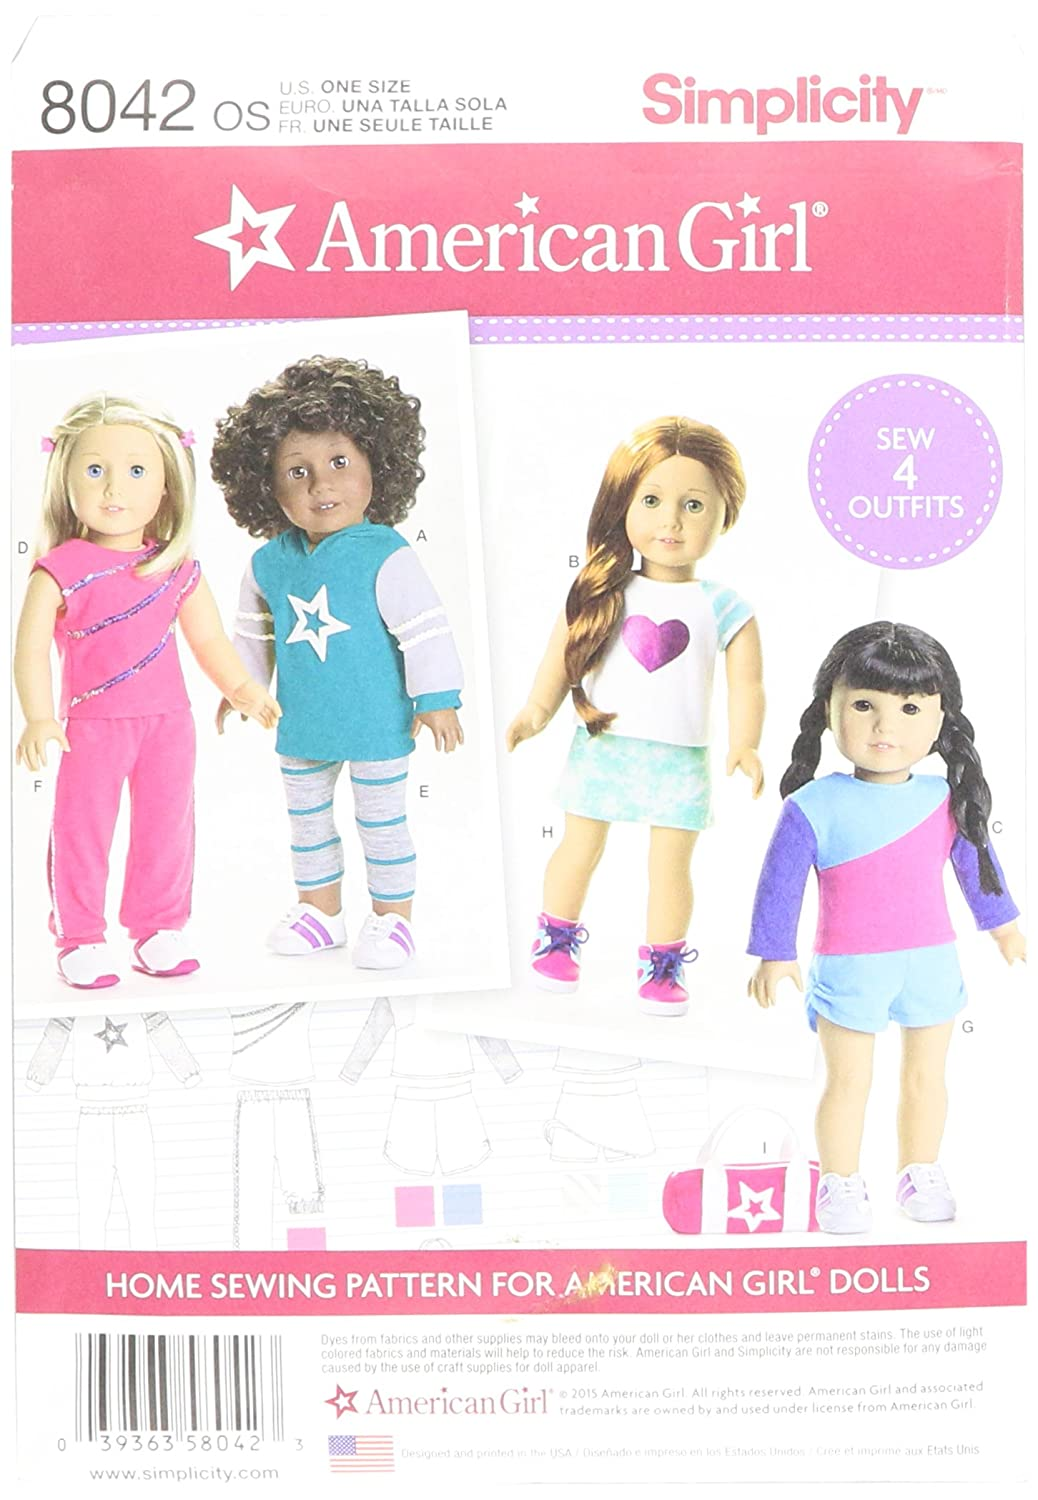 Simplicity Patterns American Girl Doll Clothes for 18 Inch Doll Size: Os (One Size), 8042 OUTLOOK GROUP CORP US8042OS